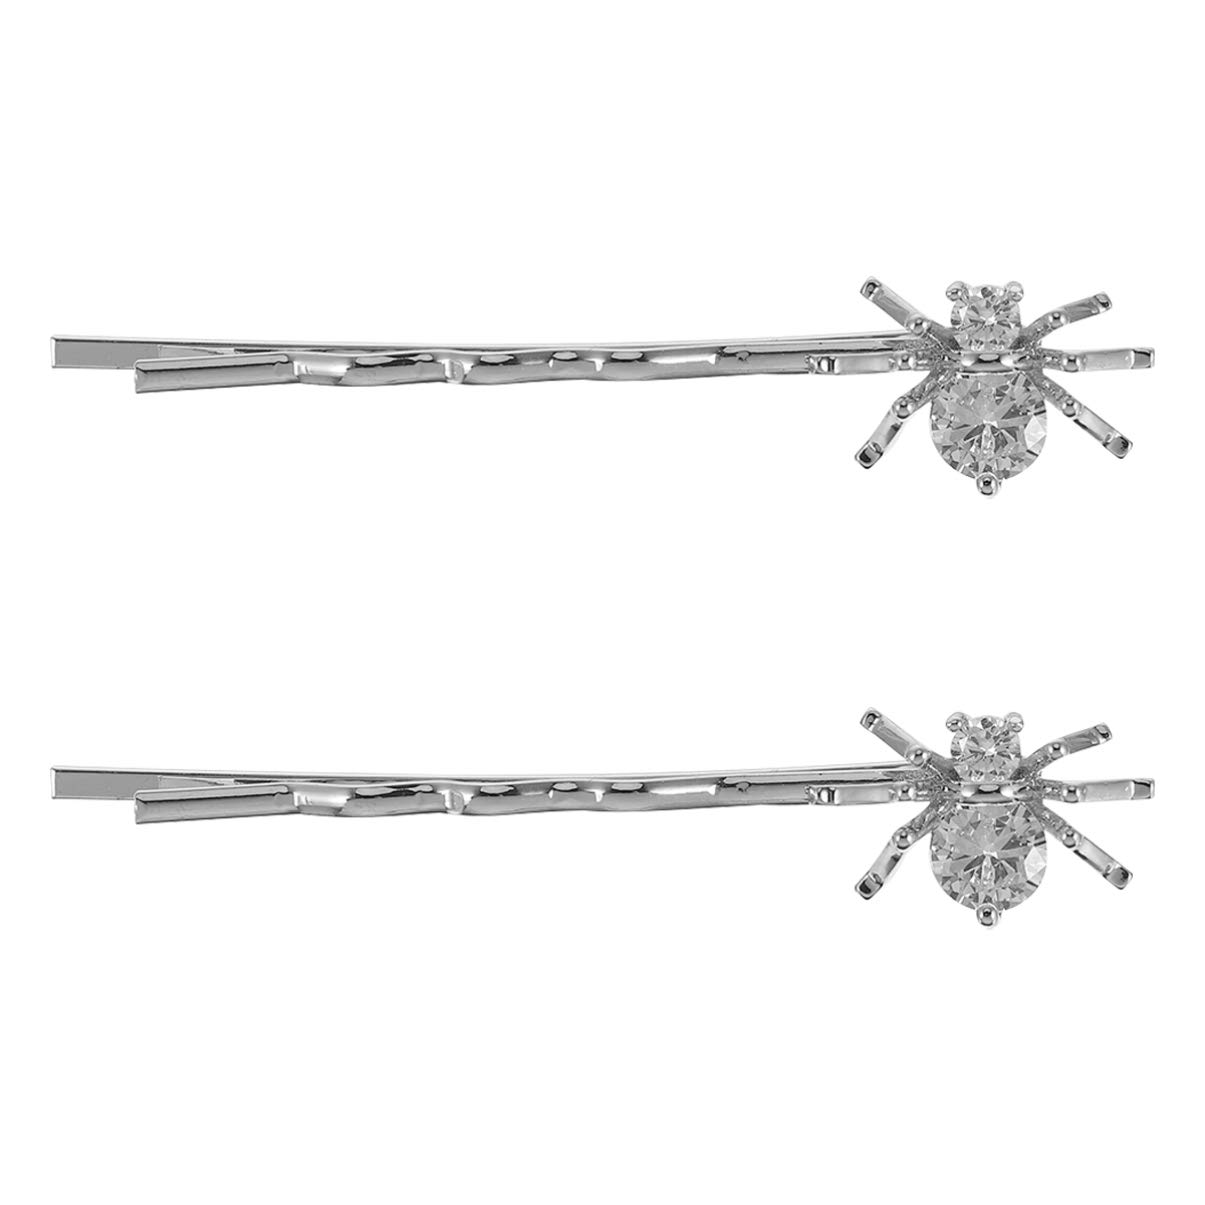 PIXNOR Halloween Hairpins Crystal Bobby Hairpins Spider Hair Clips Rhinestone Elegant Barrettes Fashion Hair Accessories for Daily Wearing and Cosplay Party Festival